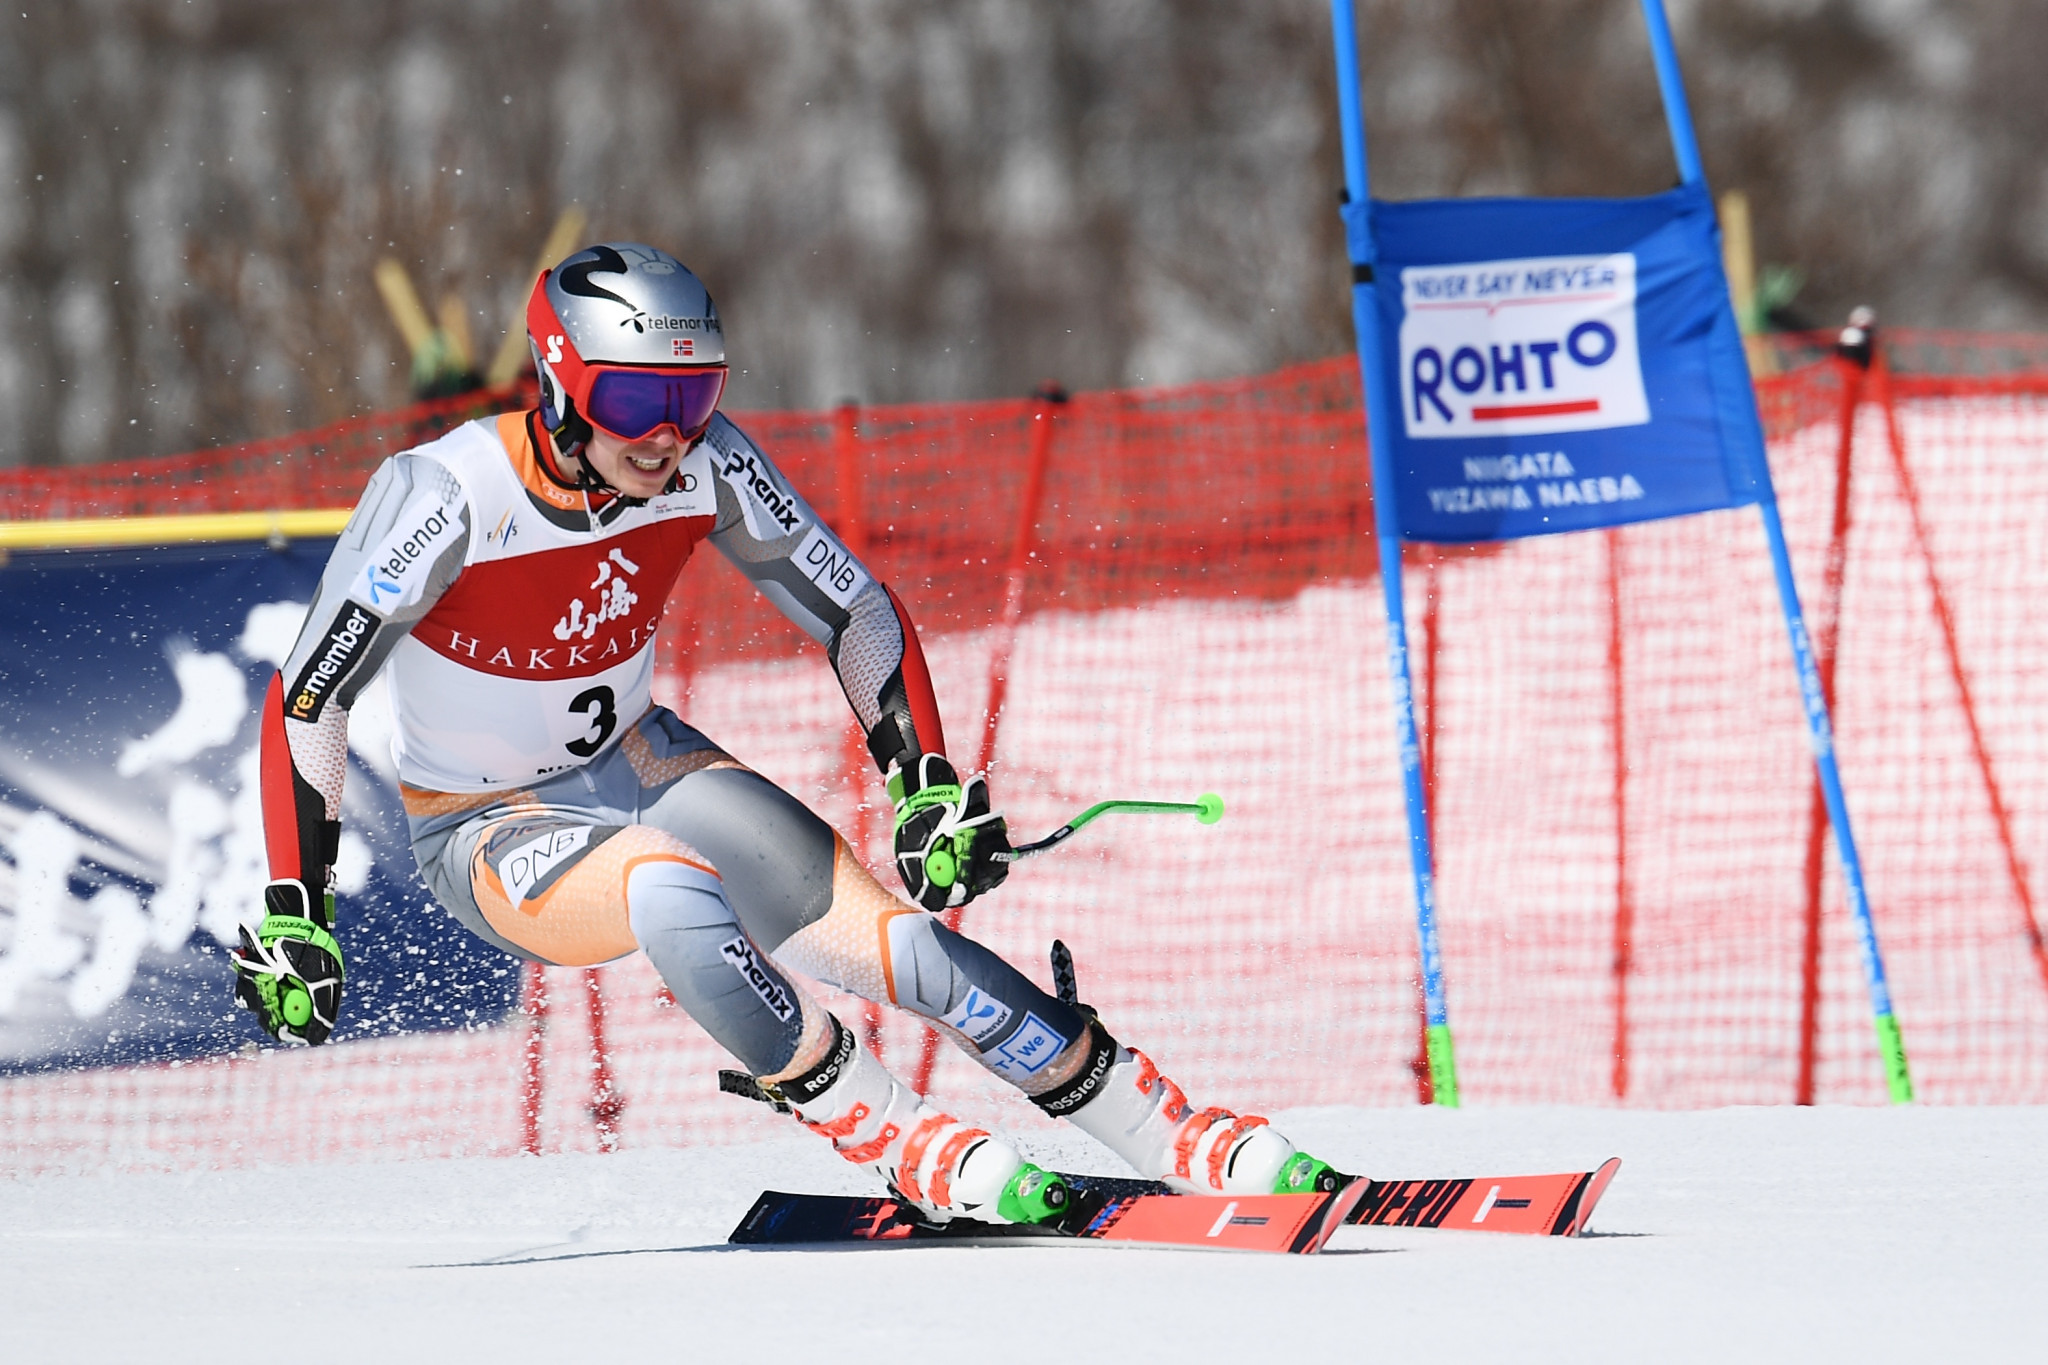 Henrik Kristoffersen led after the first run but ultimately finished fifth ©Getty Images